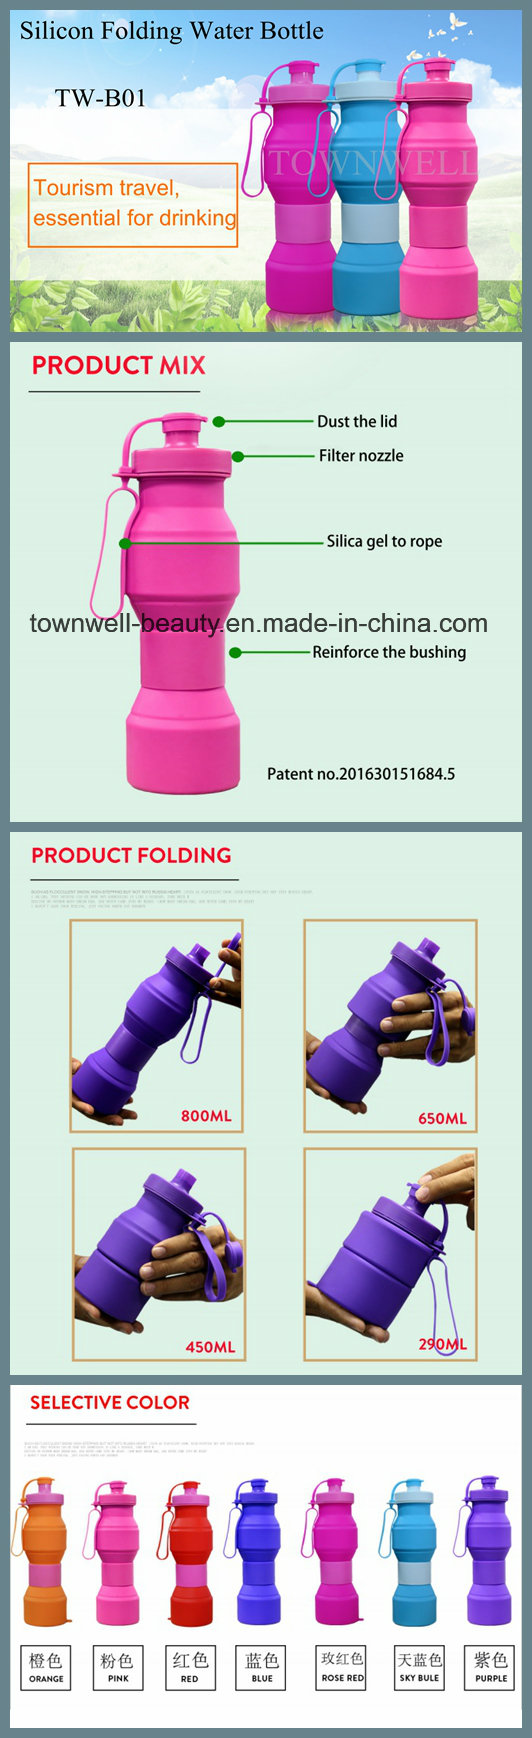 4 Capacities in 1 Bottle Silicone Foldable Water Bottle with Different Colors